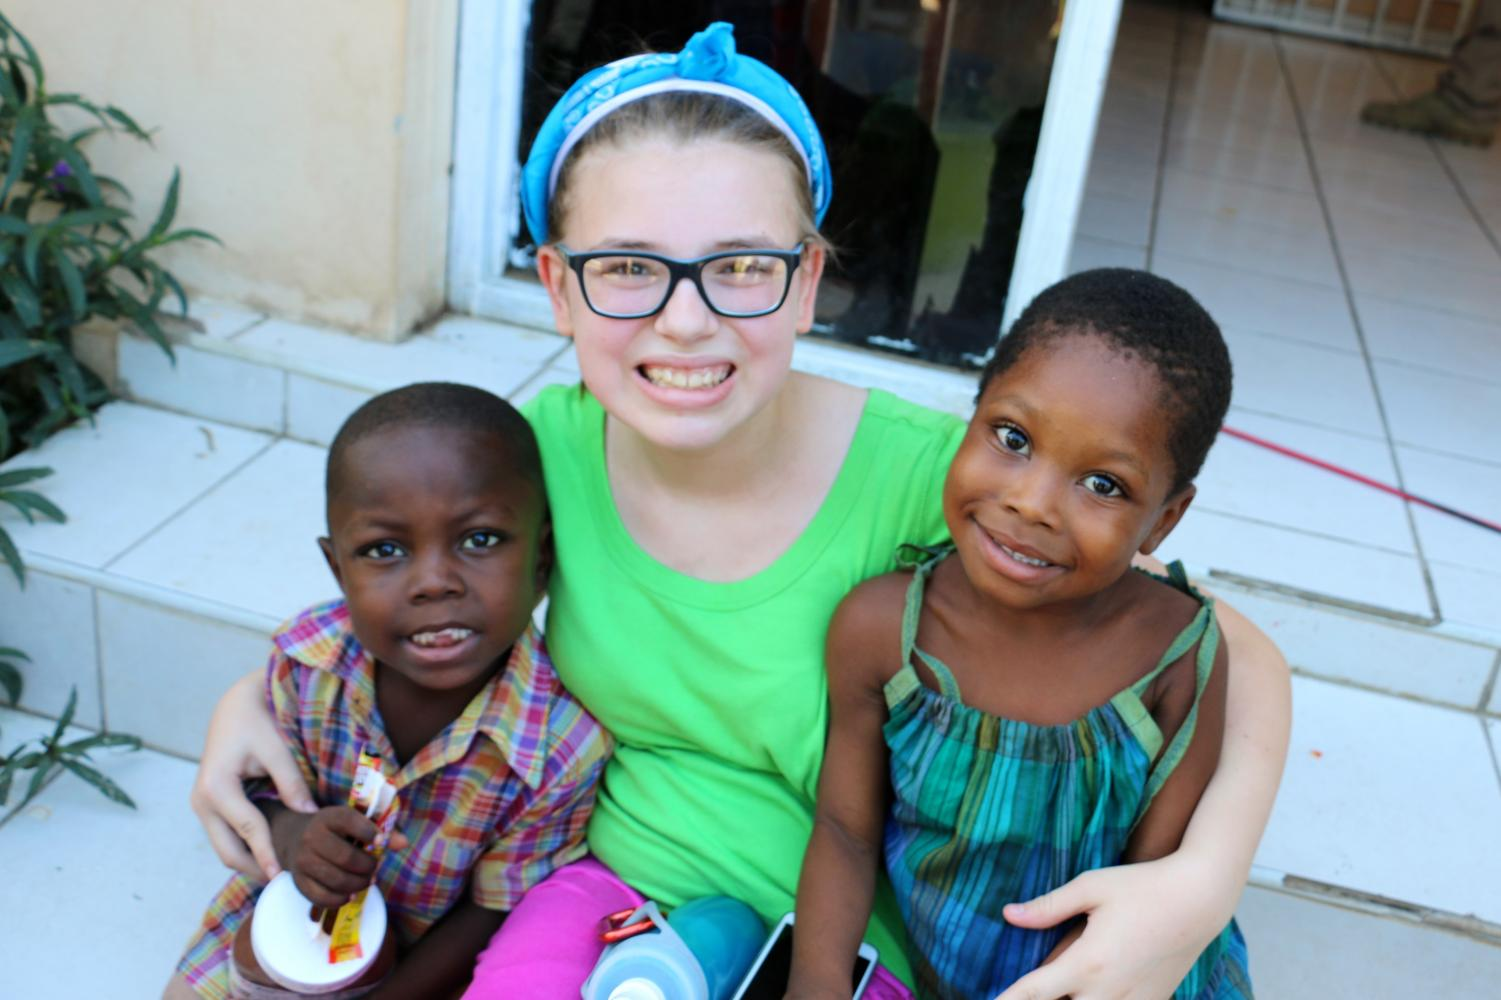 Nicole dencklau with Haitian orphans,Jerry and Esther during her trip to Haiti.